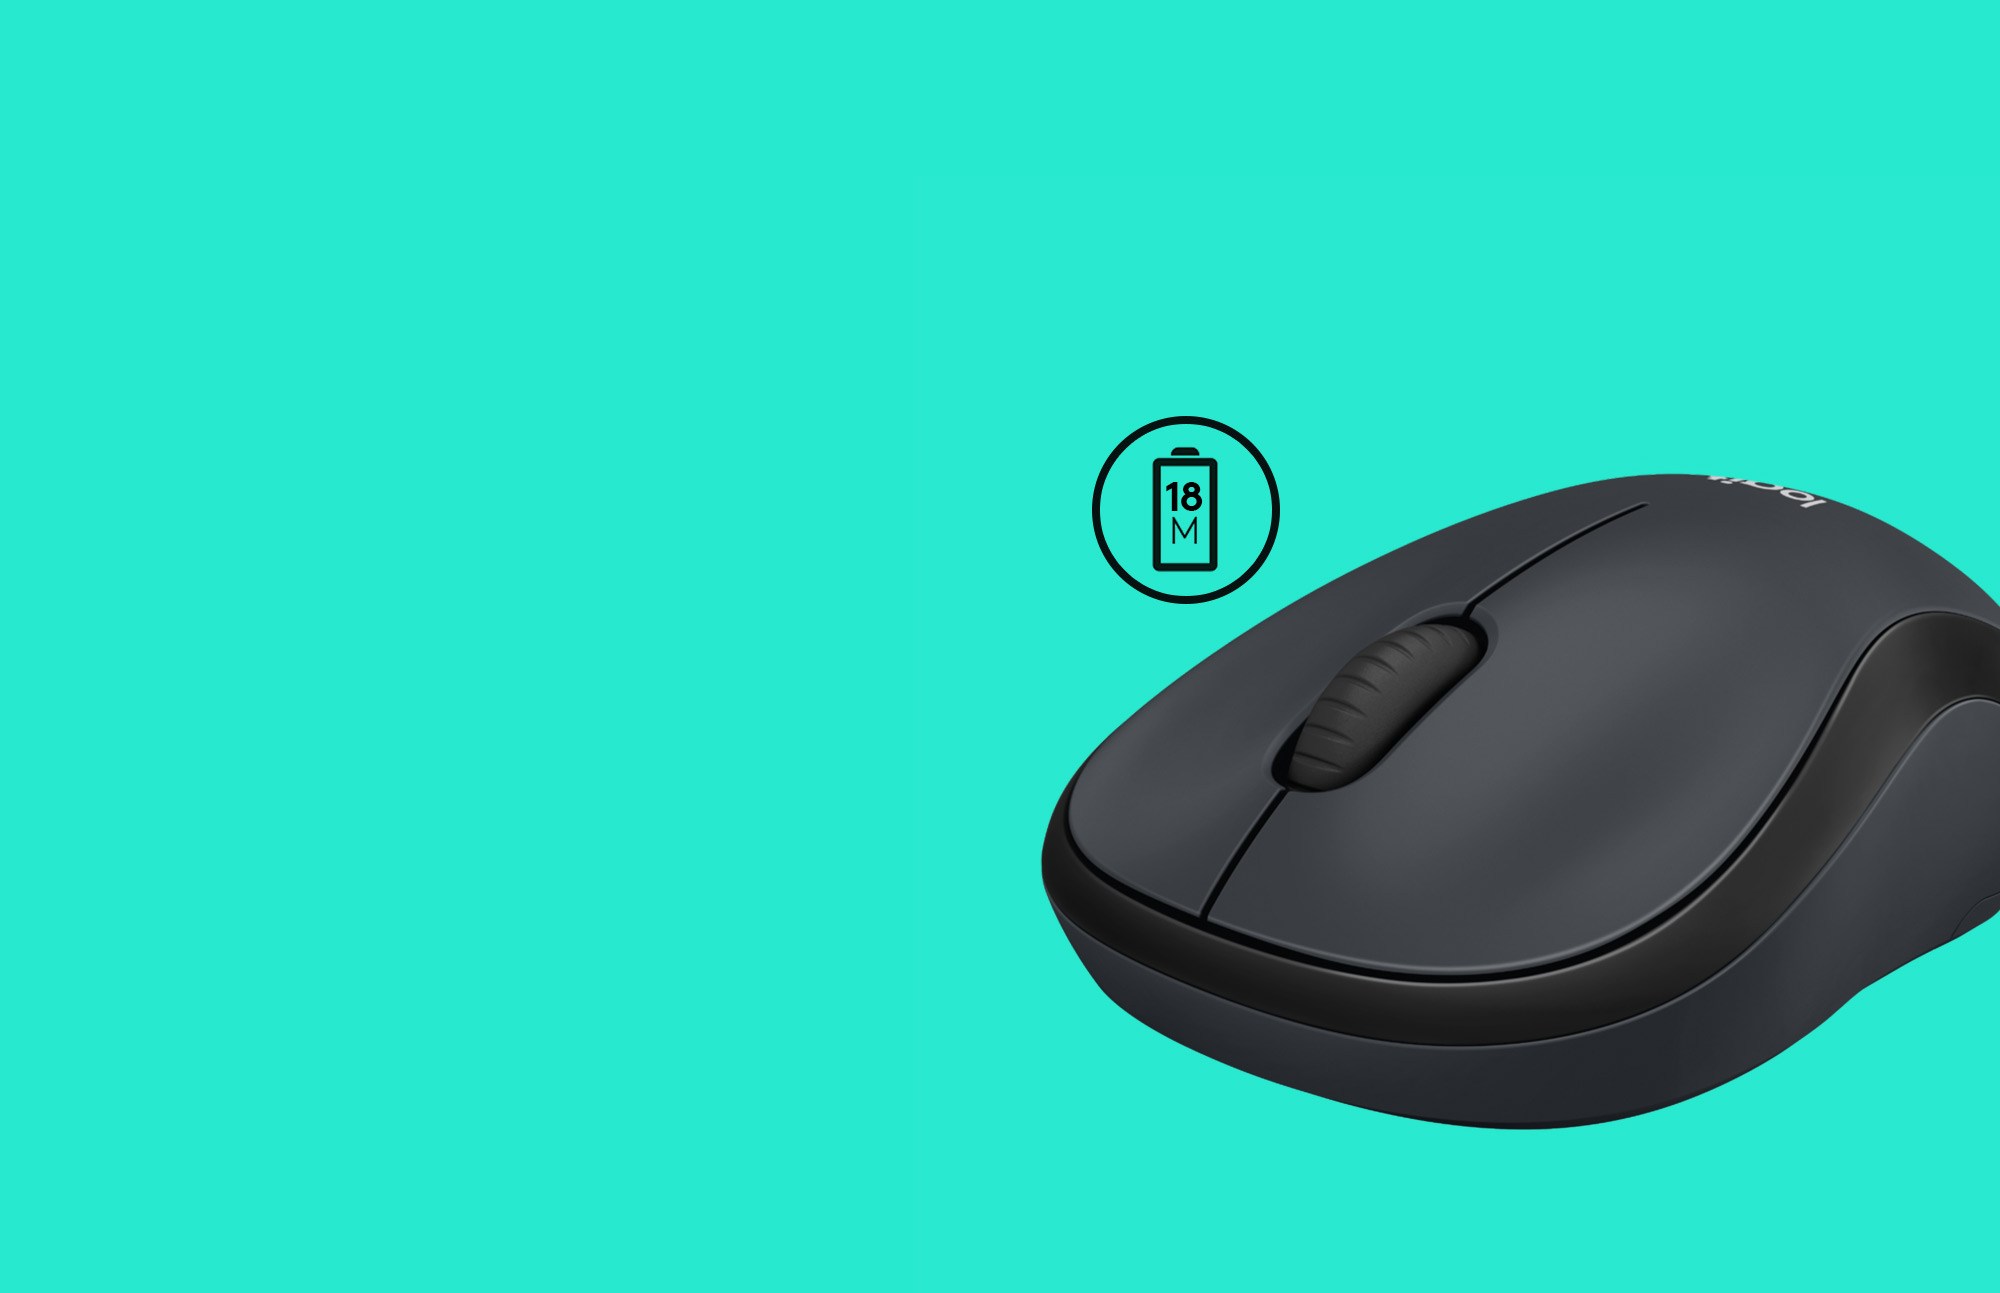 M220 Black Mouse on Teal back ground